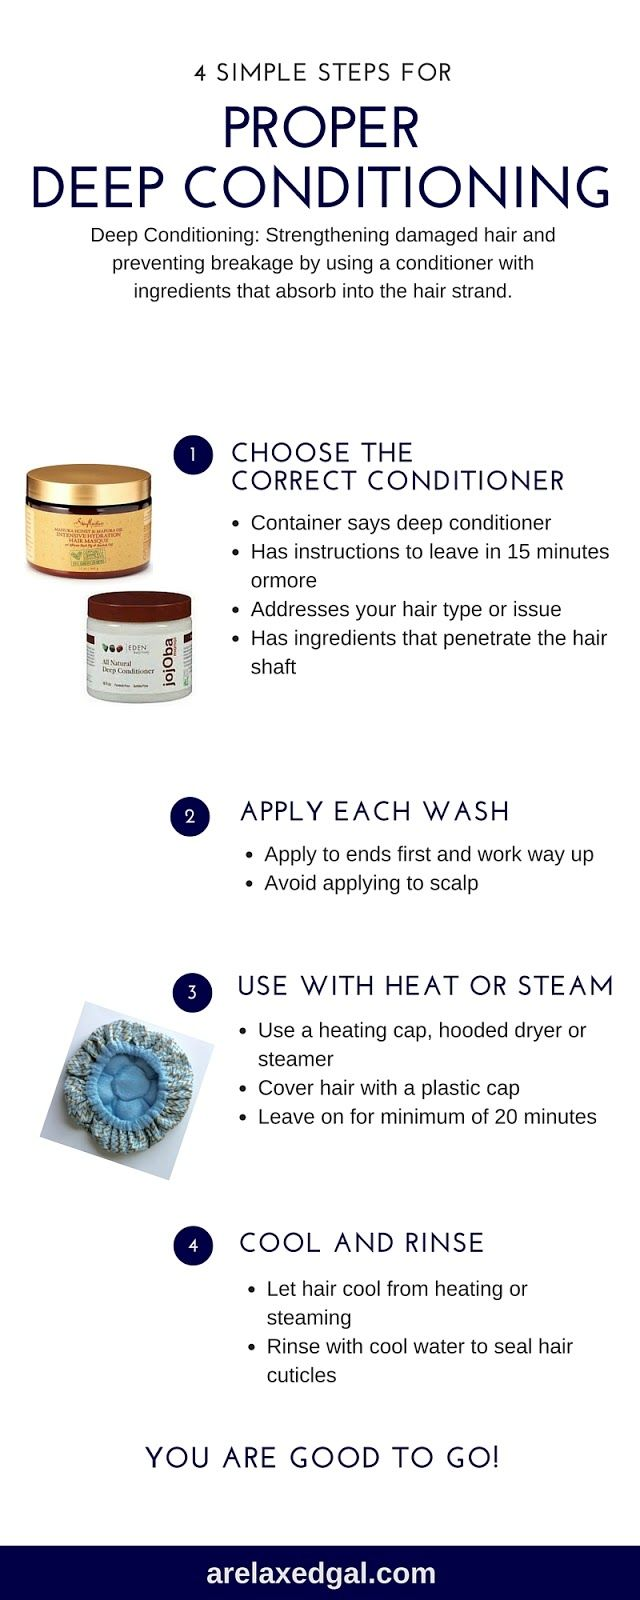 4 Simple Steps for Proper Deep Conditioning Infographic | arelaxedgal.com